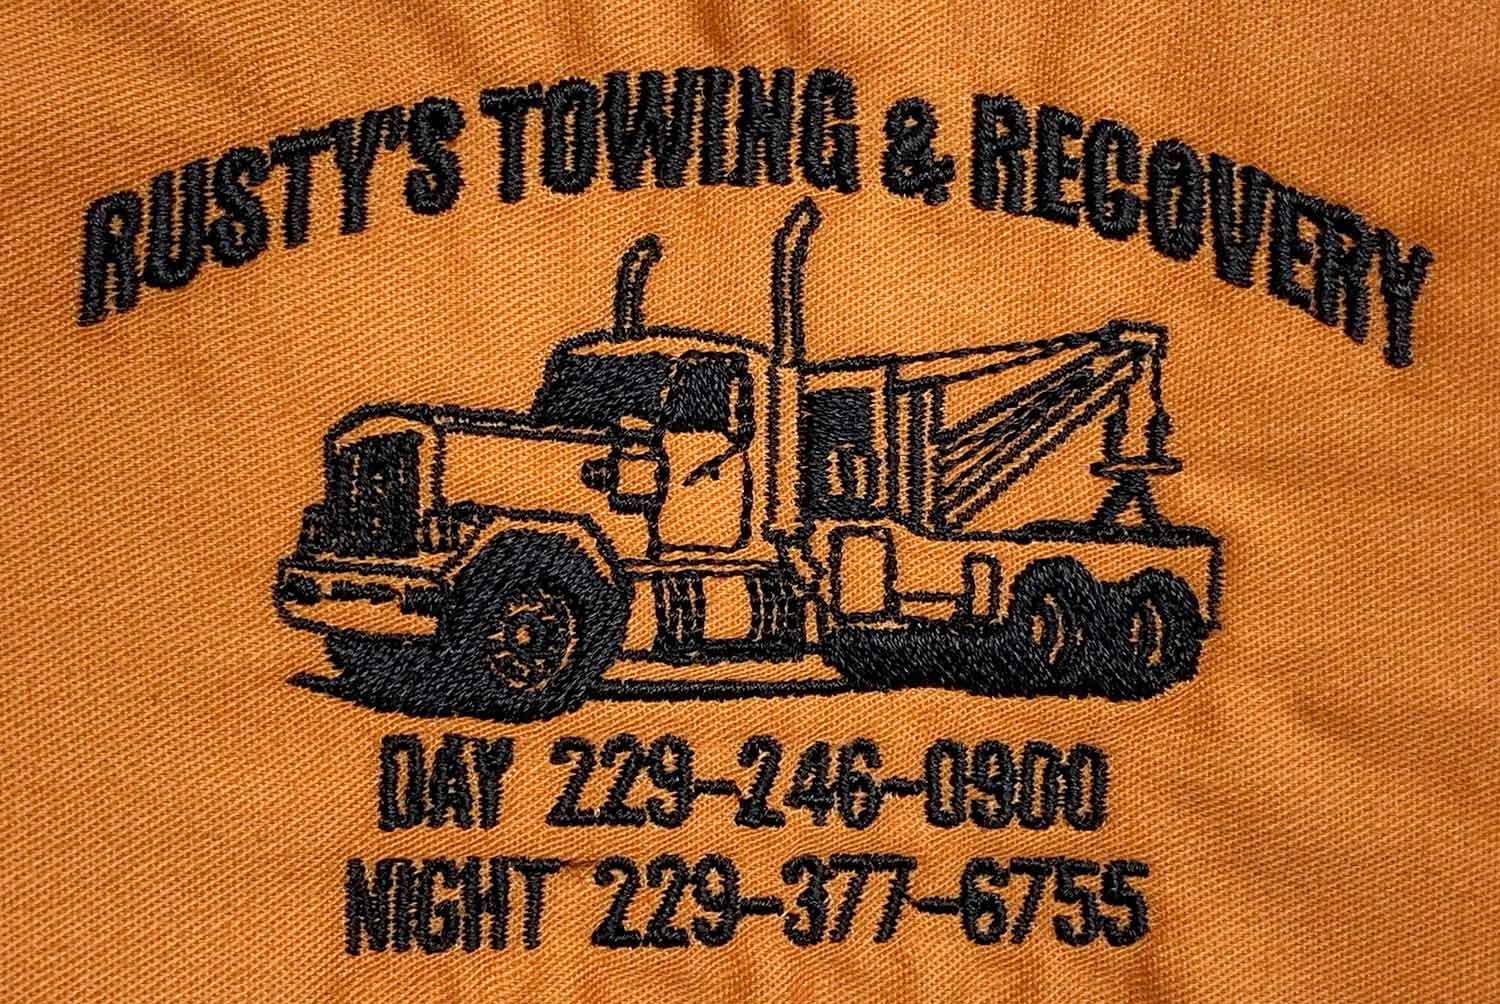 KYC_RUSTY'S-TOWING-&-RECOVERY-2_web.jpg